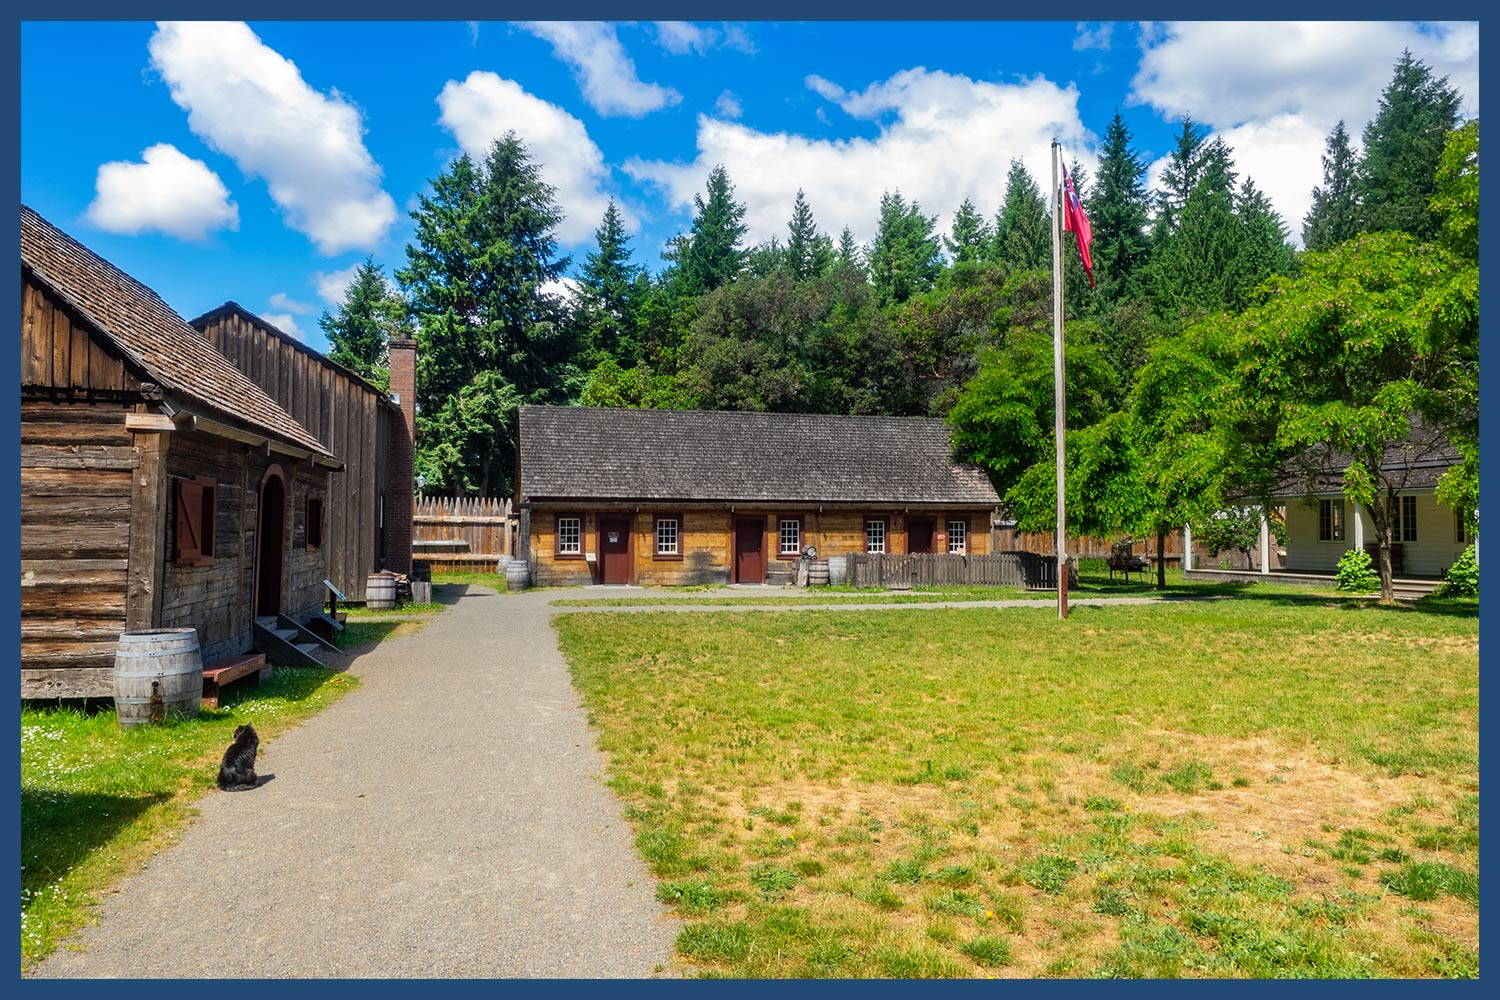 Fort Nisqually in Washington